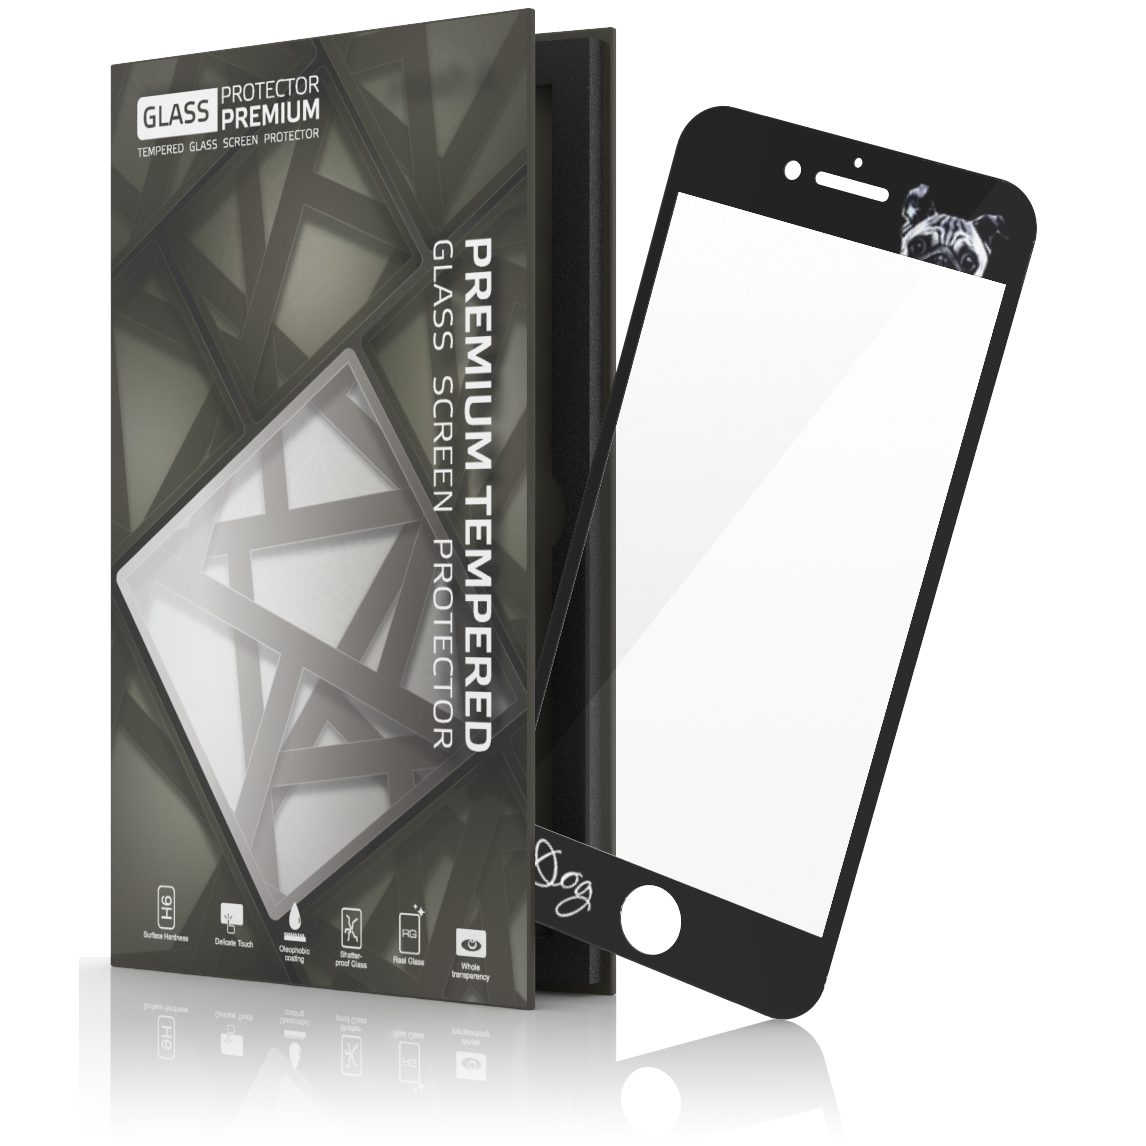 Tempered Glass Protector Screen Protection For Smartphone Tablet Full Cover Xiaomi Mi5s White The